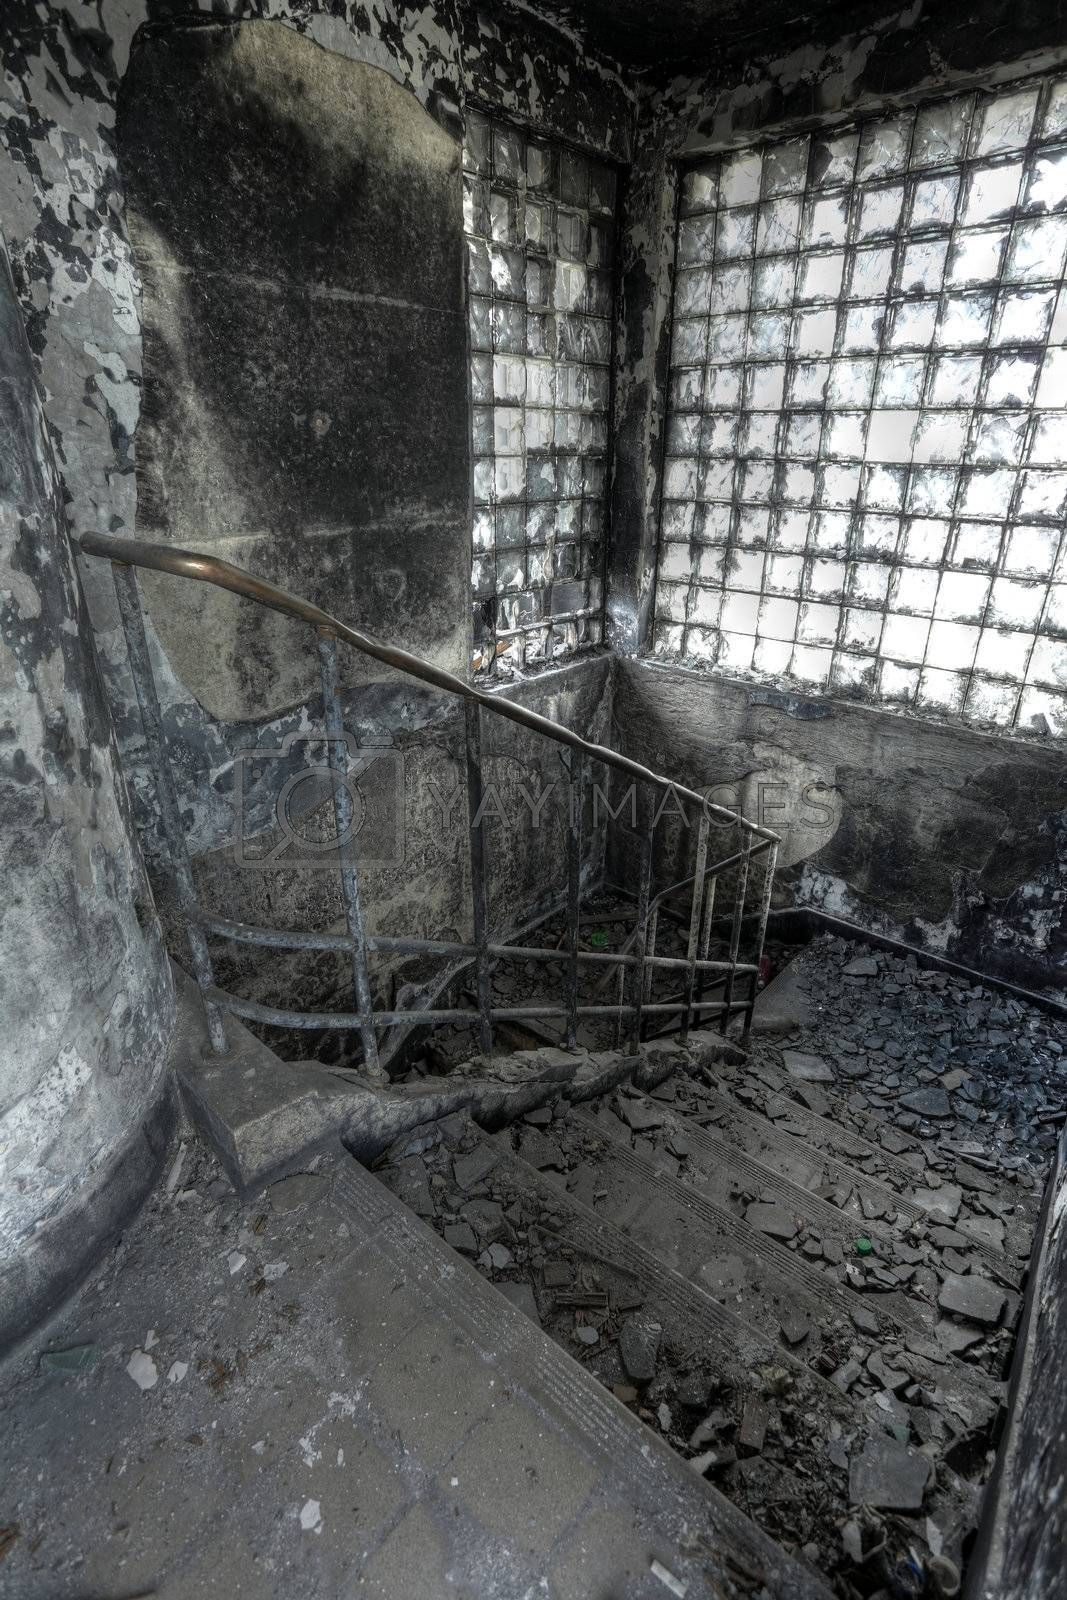 High Dynamic Range Image of a Burned Out building, stair by leungchopan